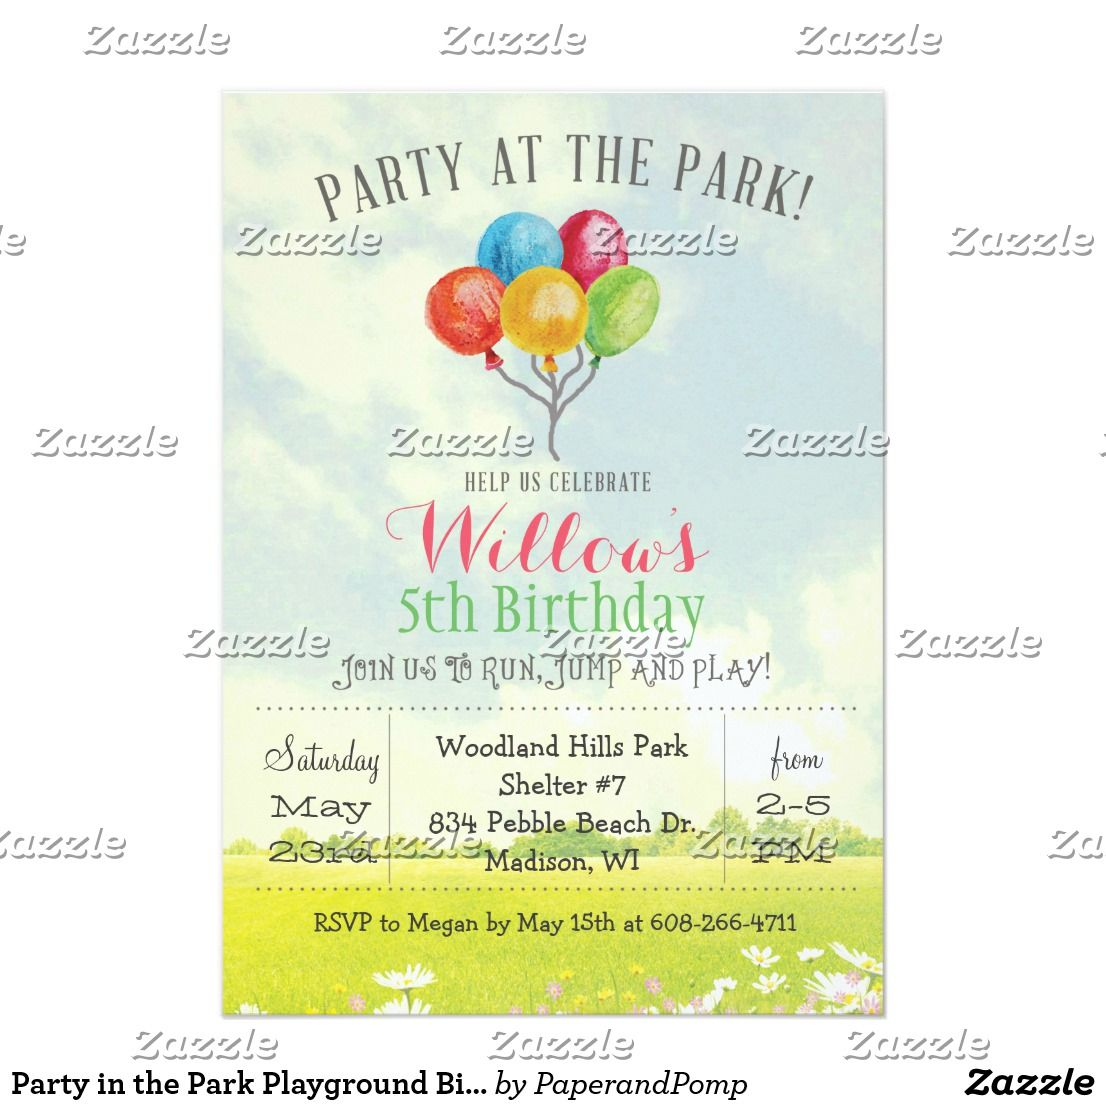 Party in the park playground birthday invitation birthdays party in the park playground birthday invitation filmwisefo Gallery